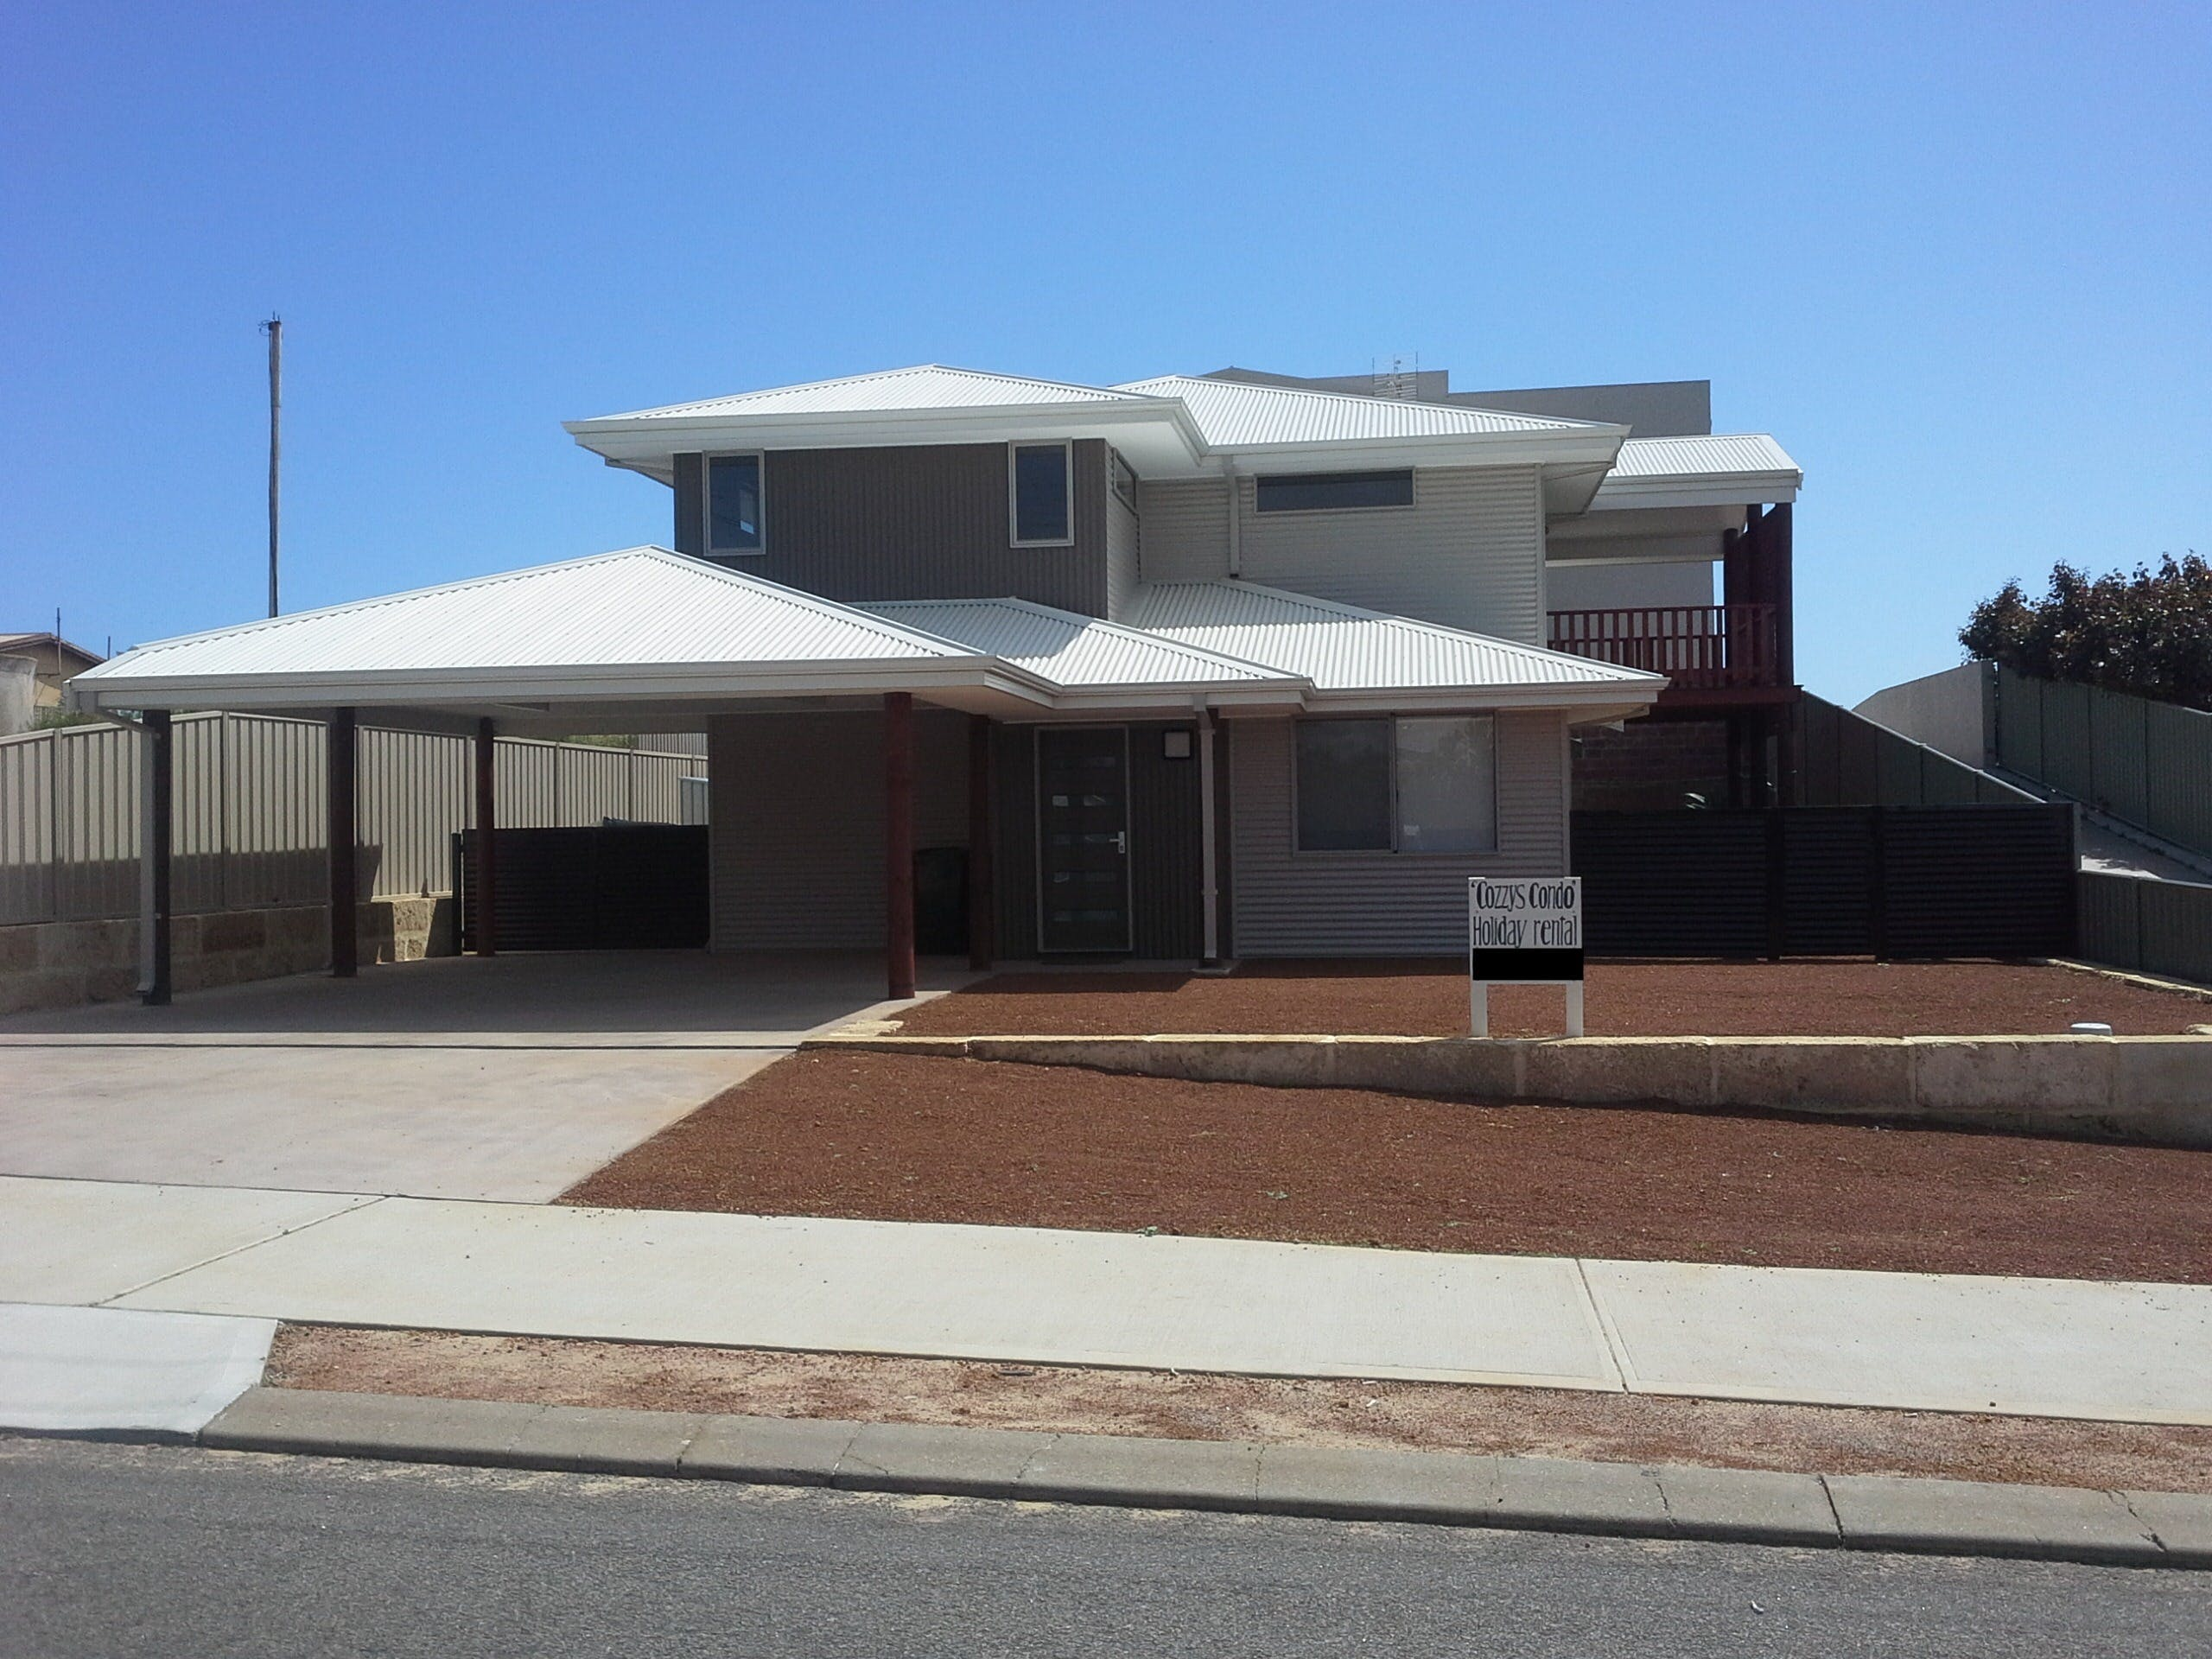 Cozzys Condo Luxury Beach House - Mount Gambier Accommodation